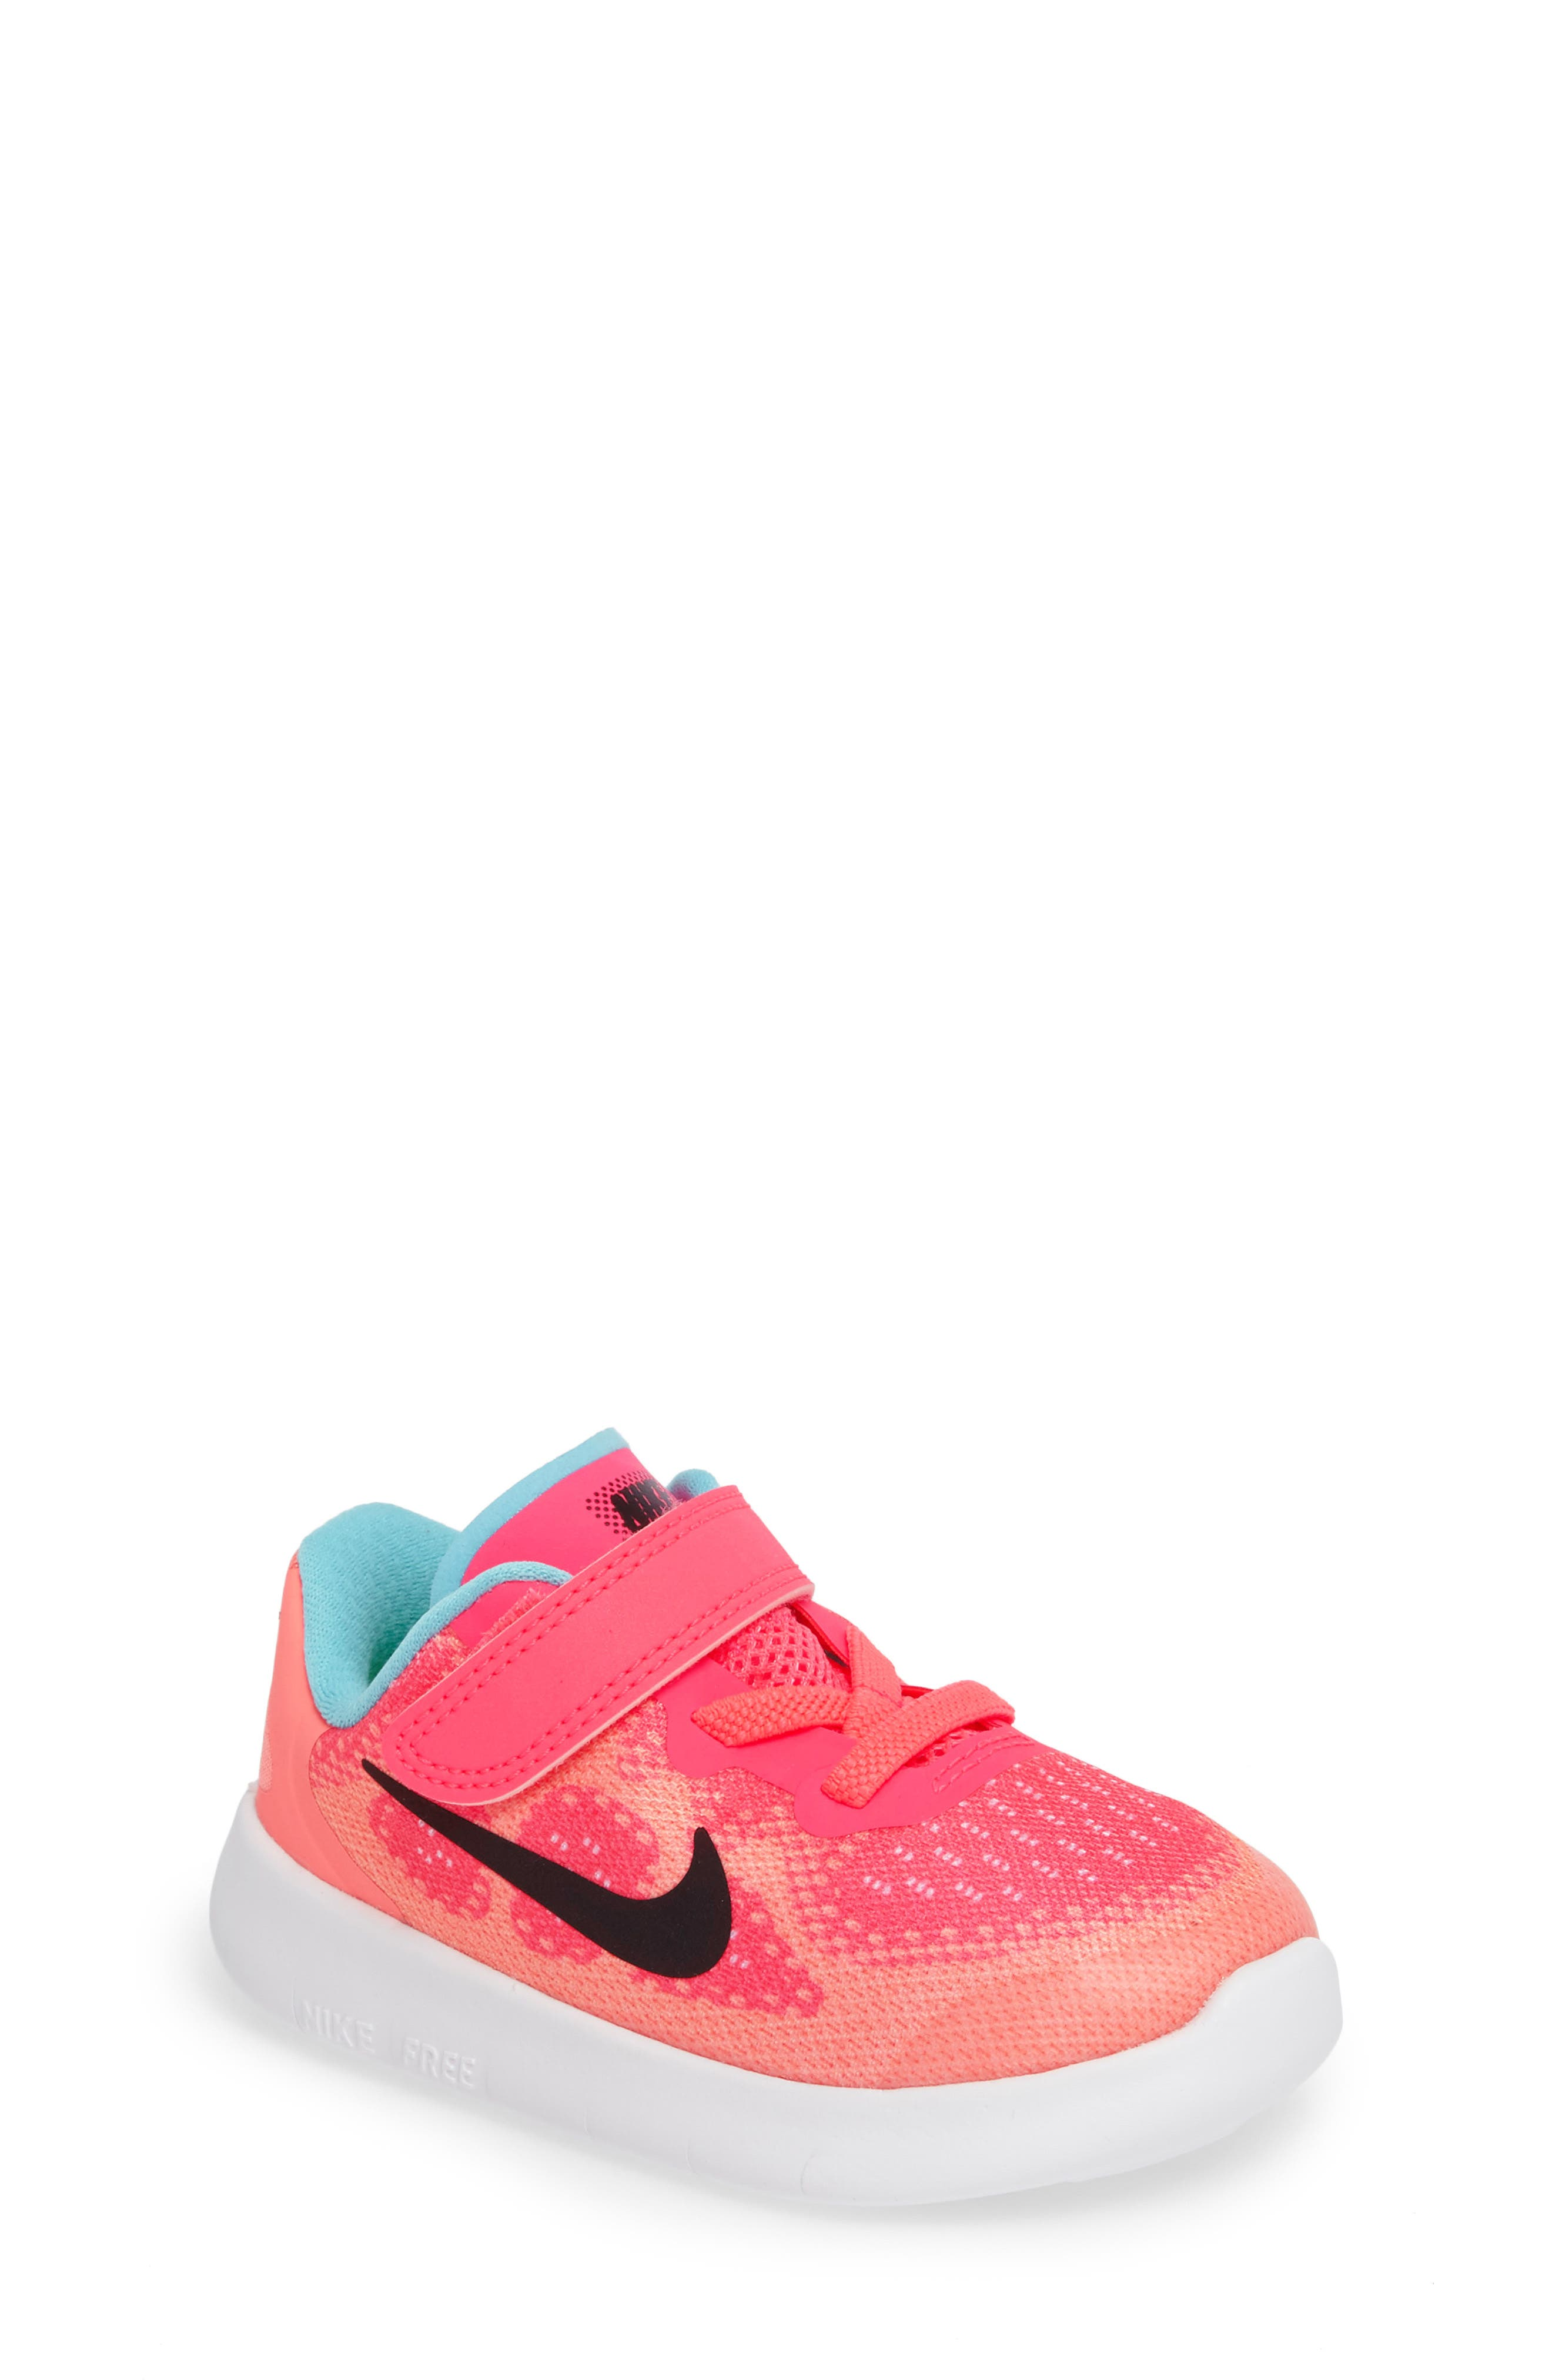 Nike Free Run 2017 Sneaker (Baby, Walker, Toddler & Little Kid)